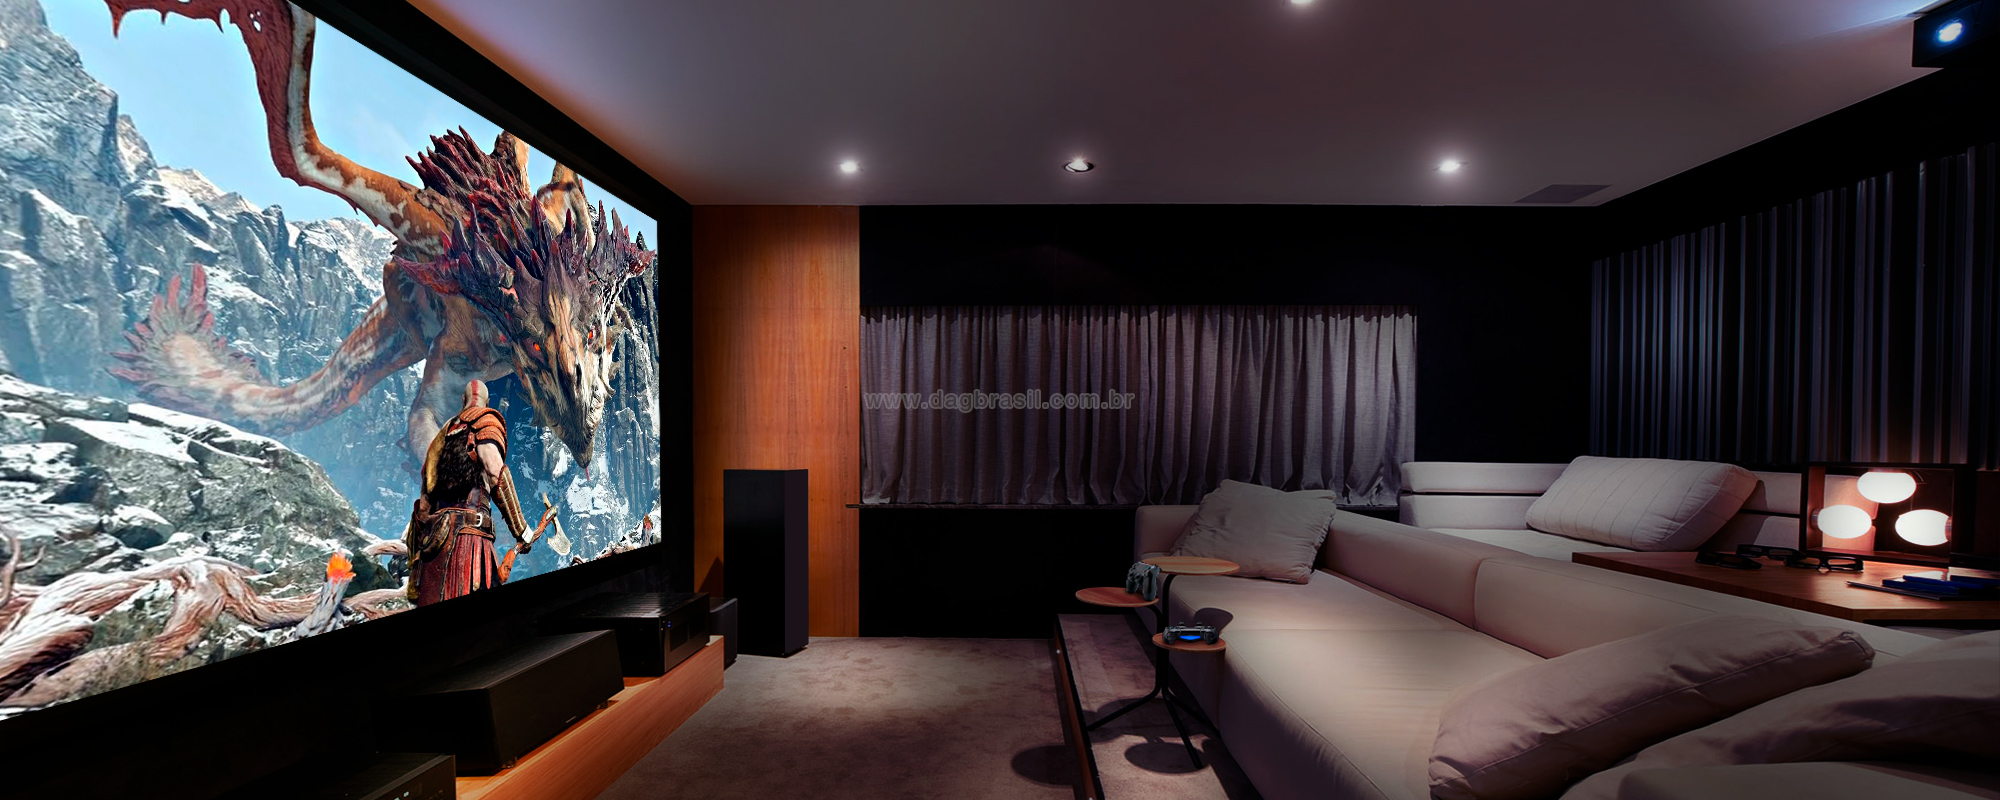 Projetos de salas de home theater e salas de home cinema com caixas Bowers & Wilkins | Dag Brasil